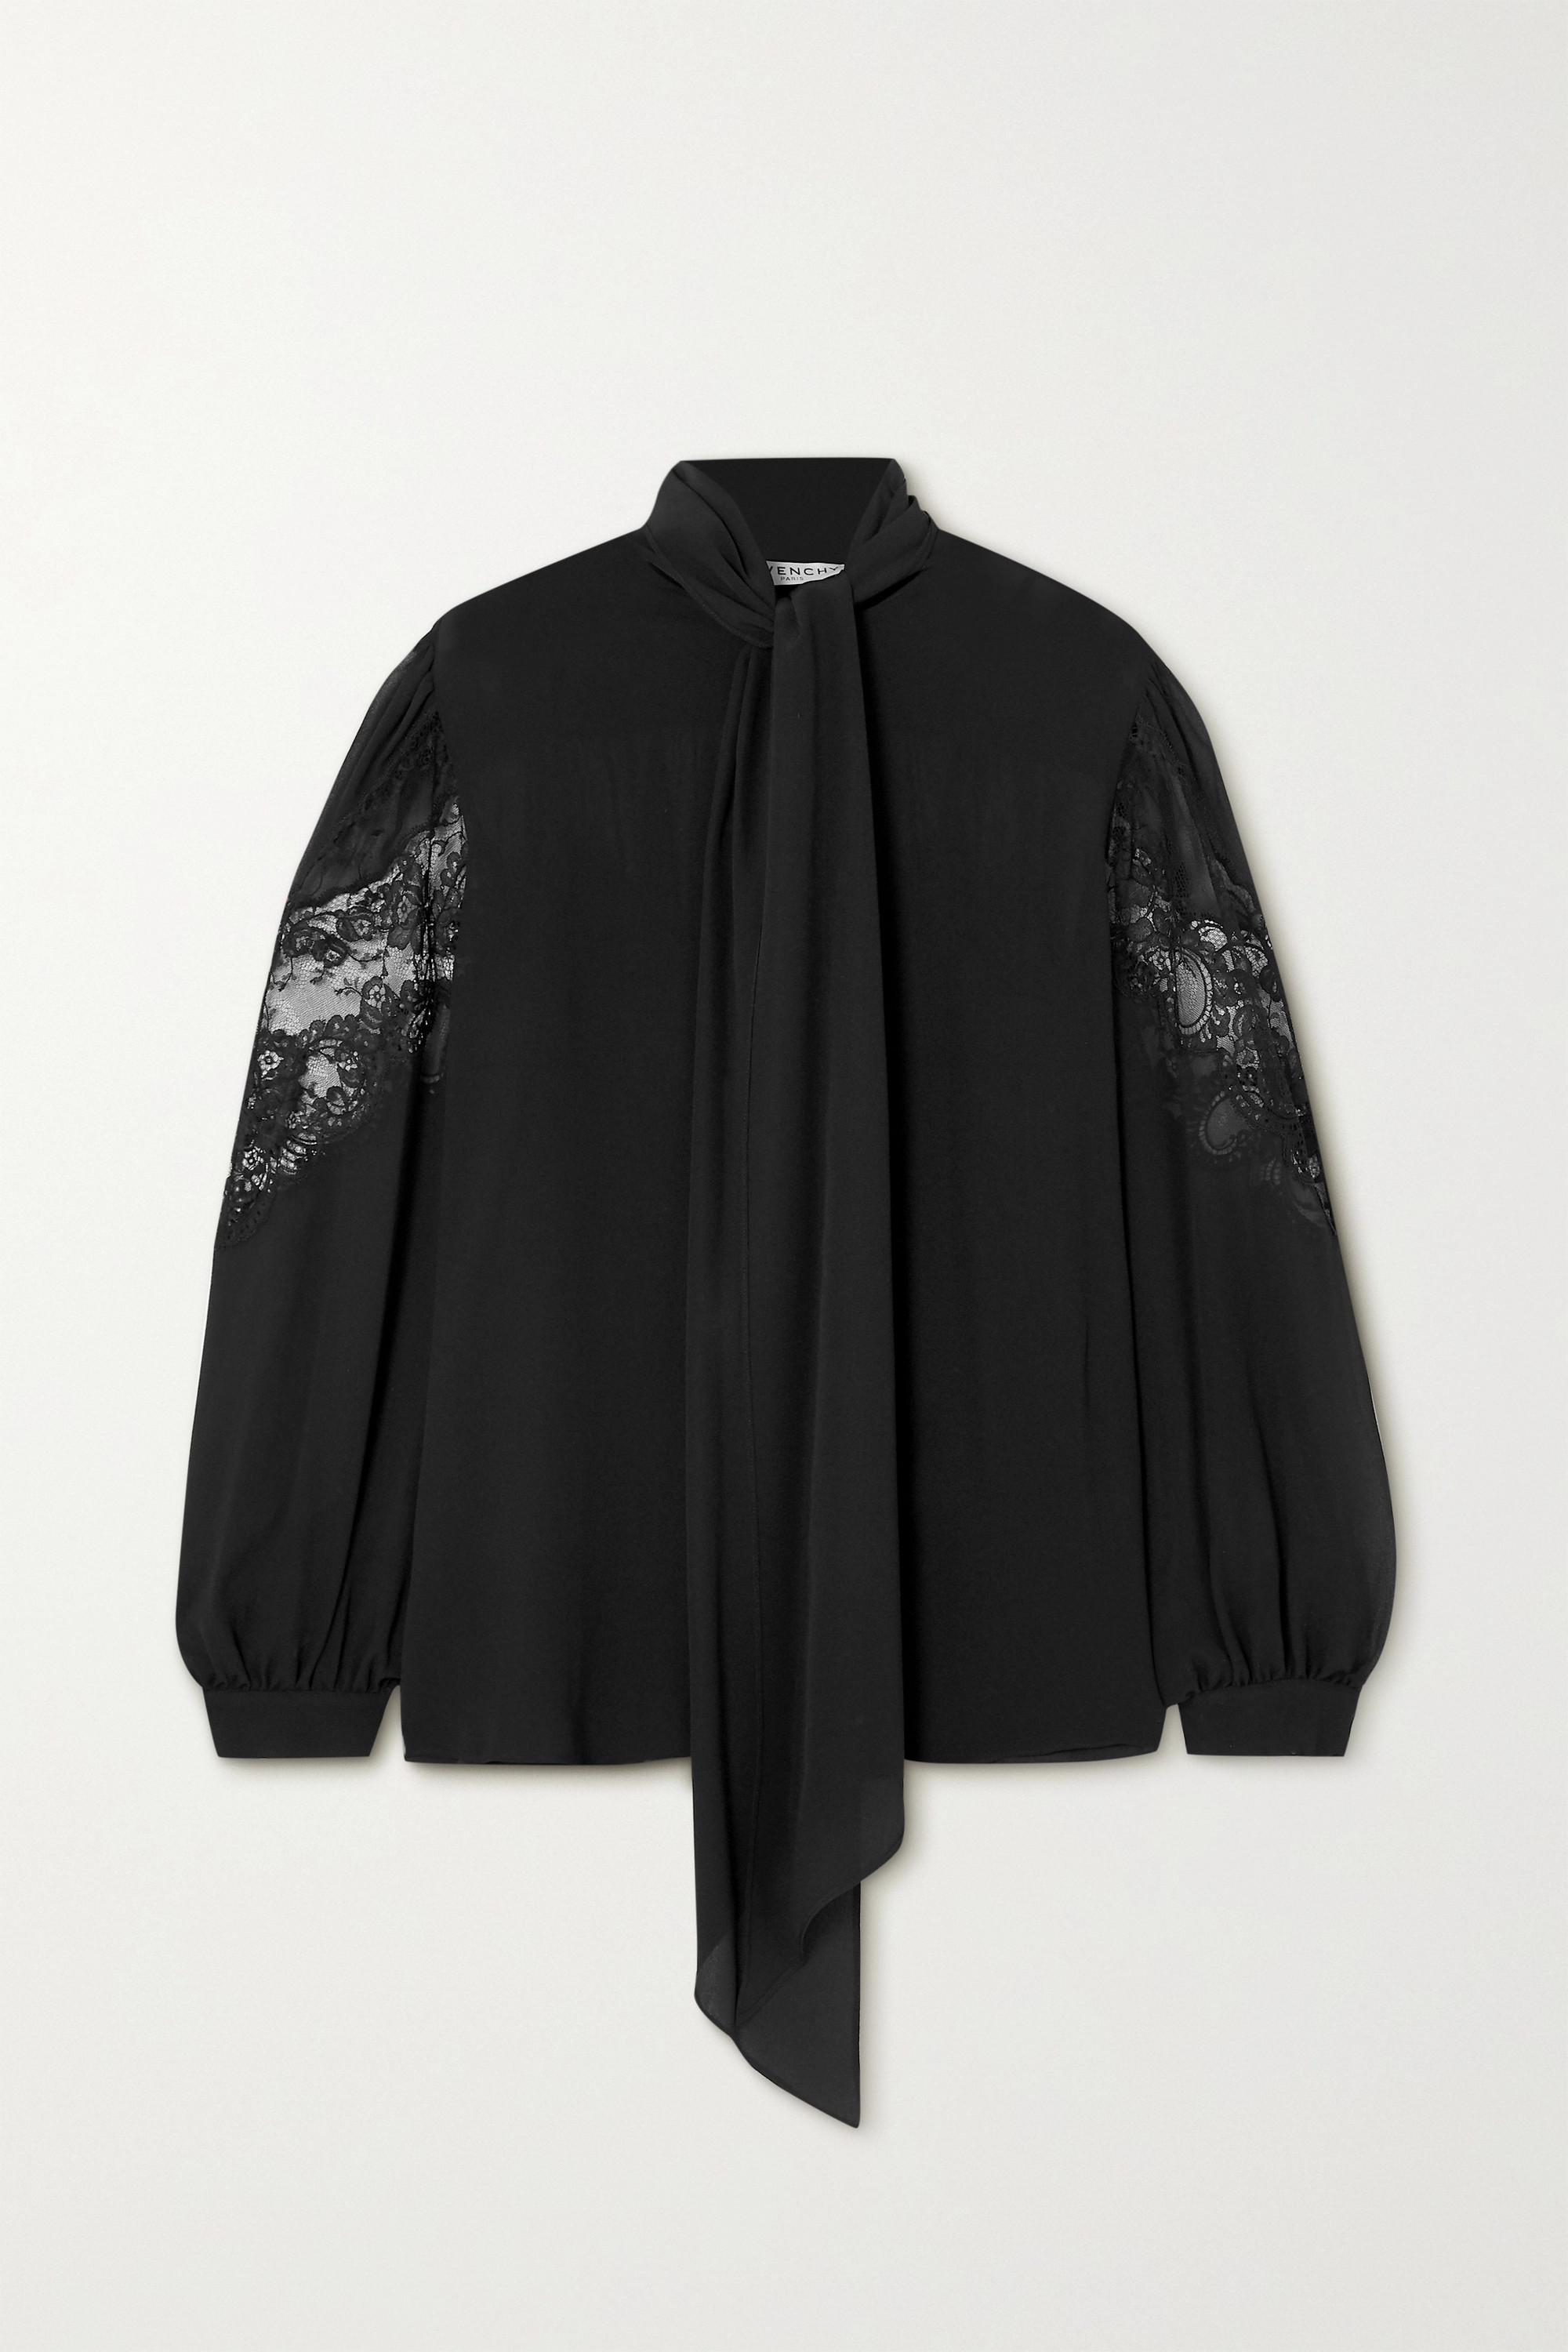 Givenchy Pussy-bow lace-trimmed silk-chiffon blouse